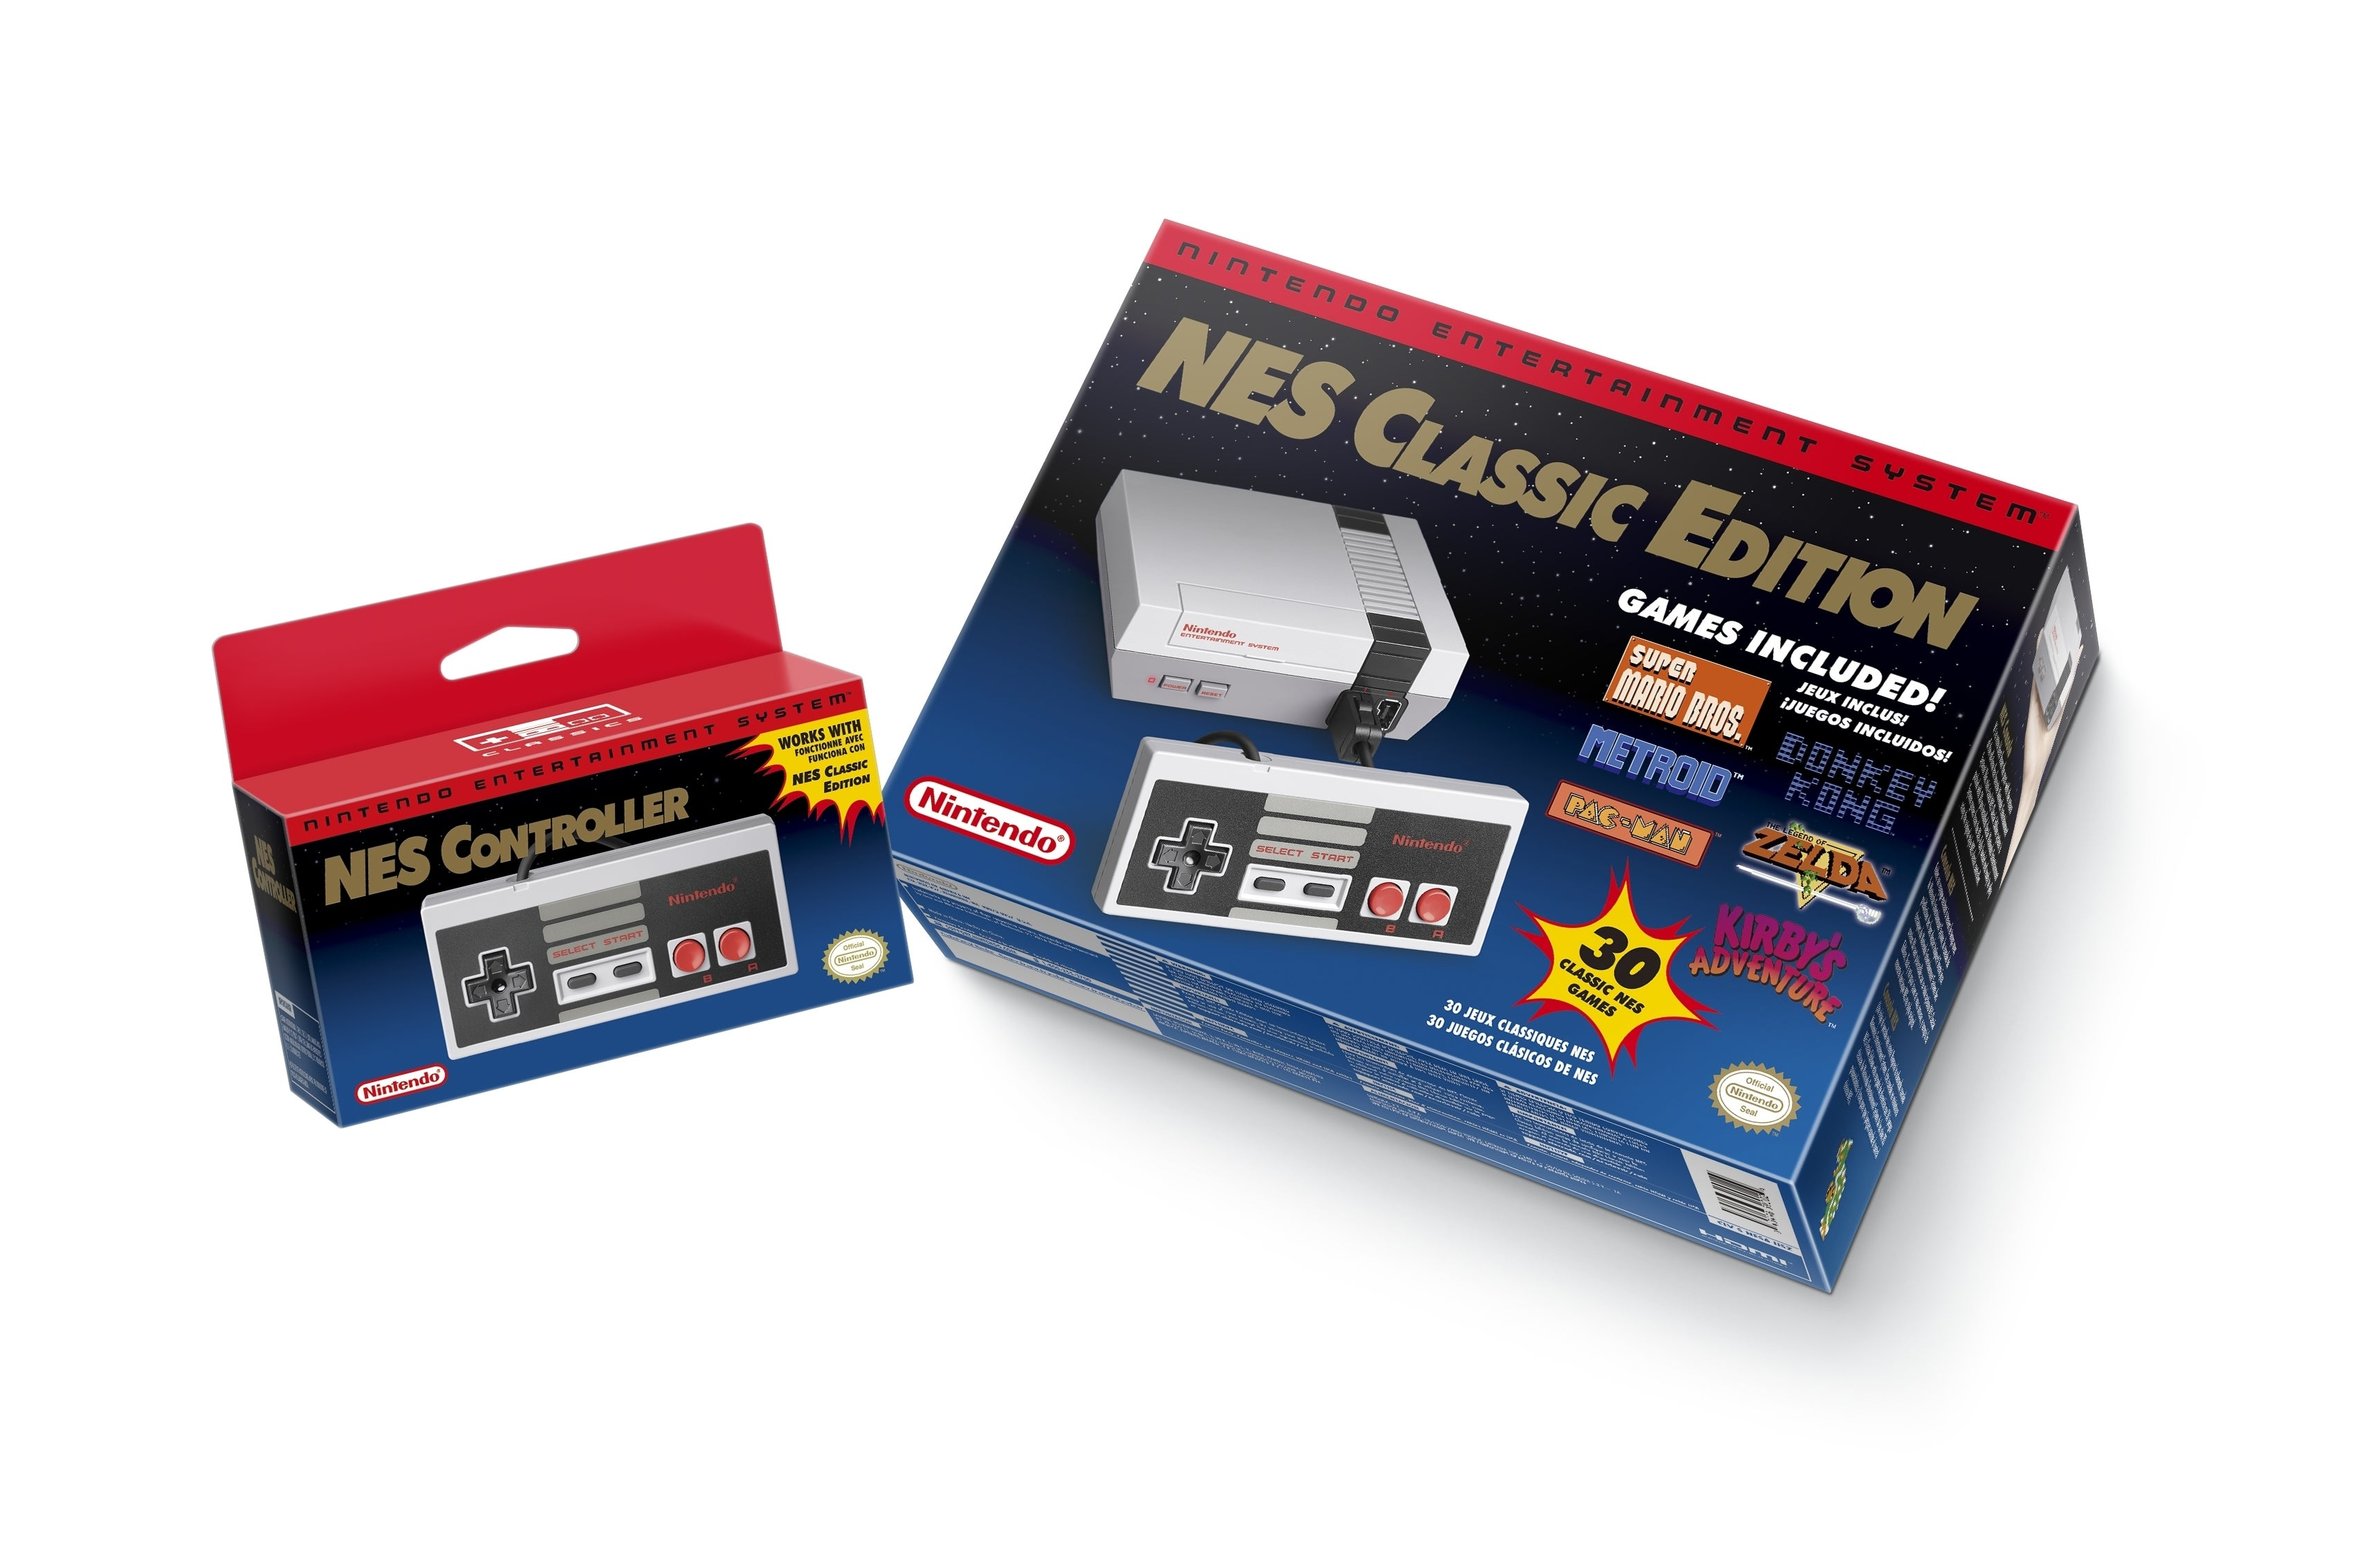 nintendo 39 s releasing a miniature nes console packed with. Black Bedroom Furniture Sets. Home Design Ideas